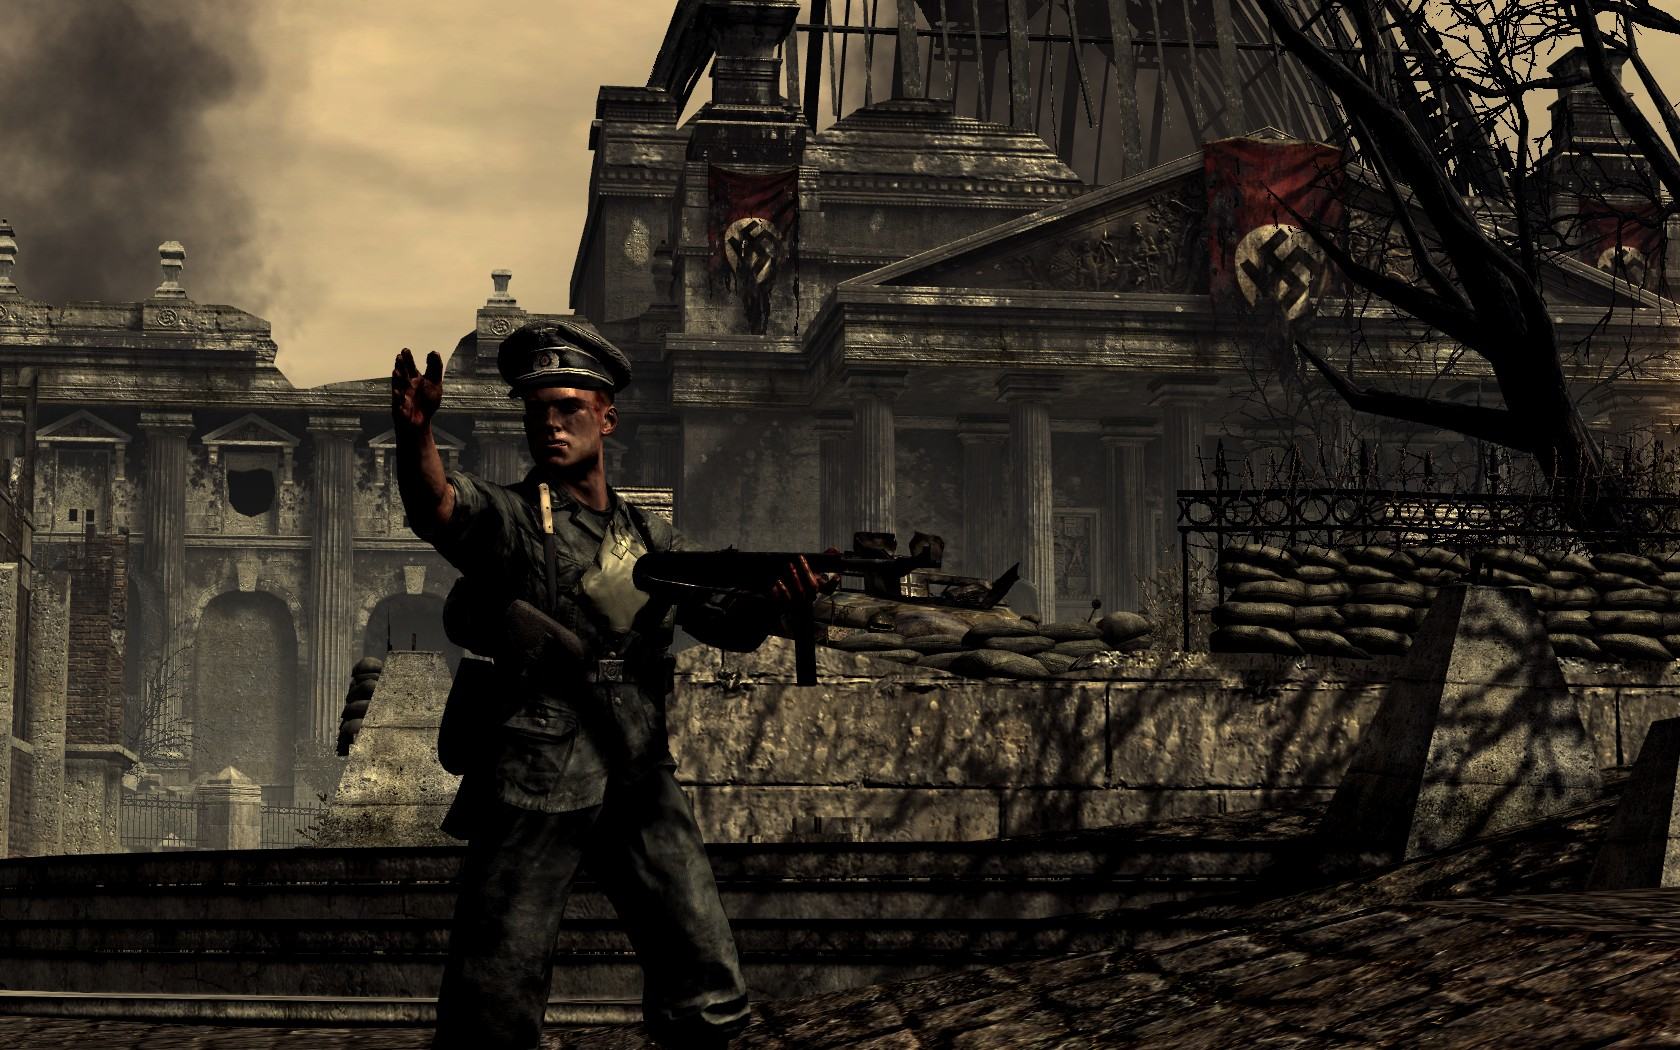 German officer image brothers realism mod for call of duty world add media report rss german officer view original thecheapjerseys Choice Image